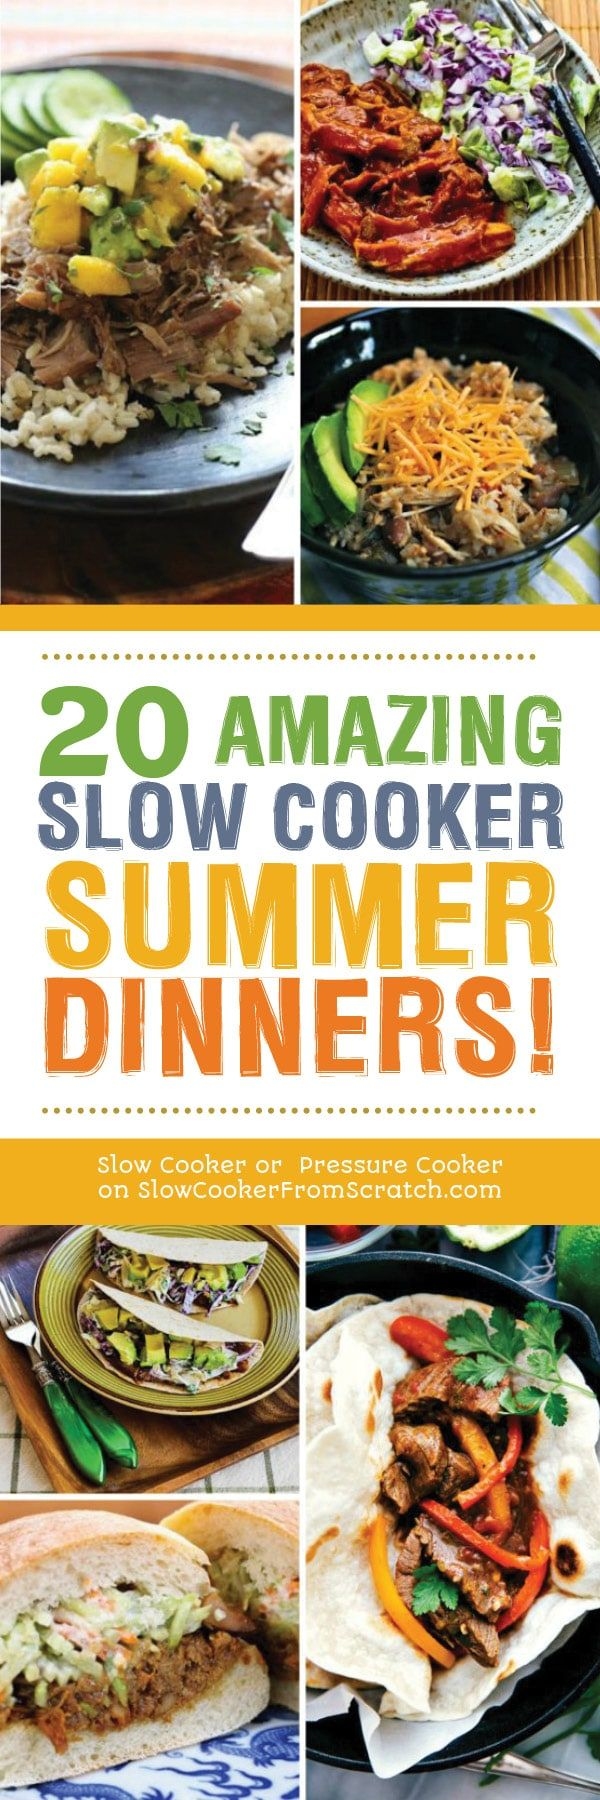 20 Amazing Slow Cooker Summer Dinners